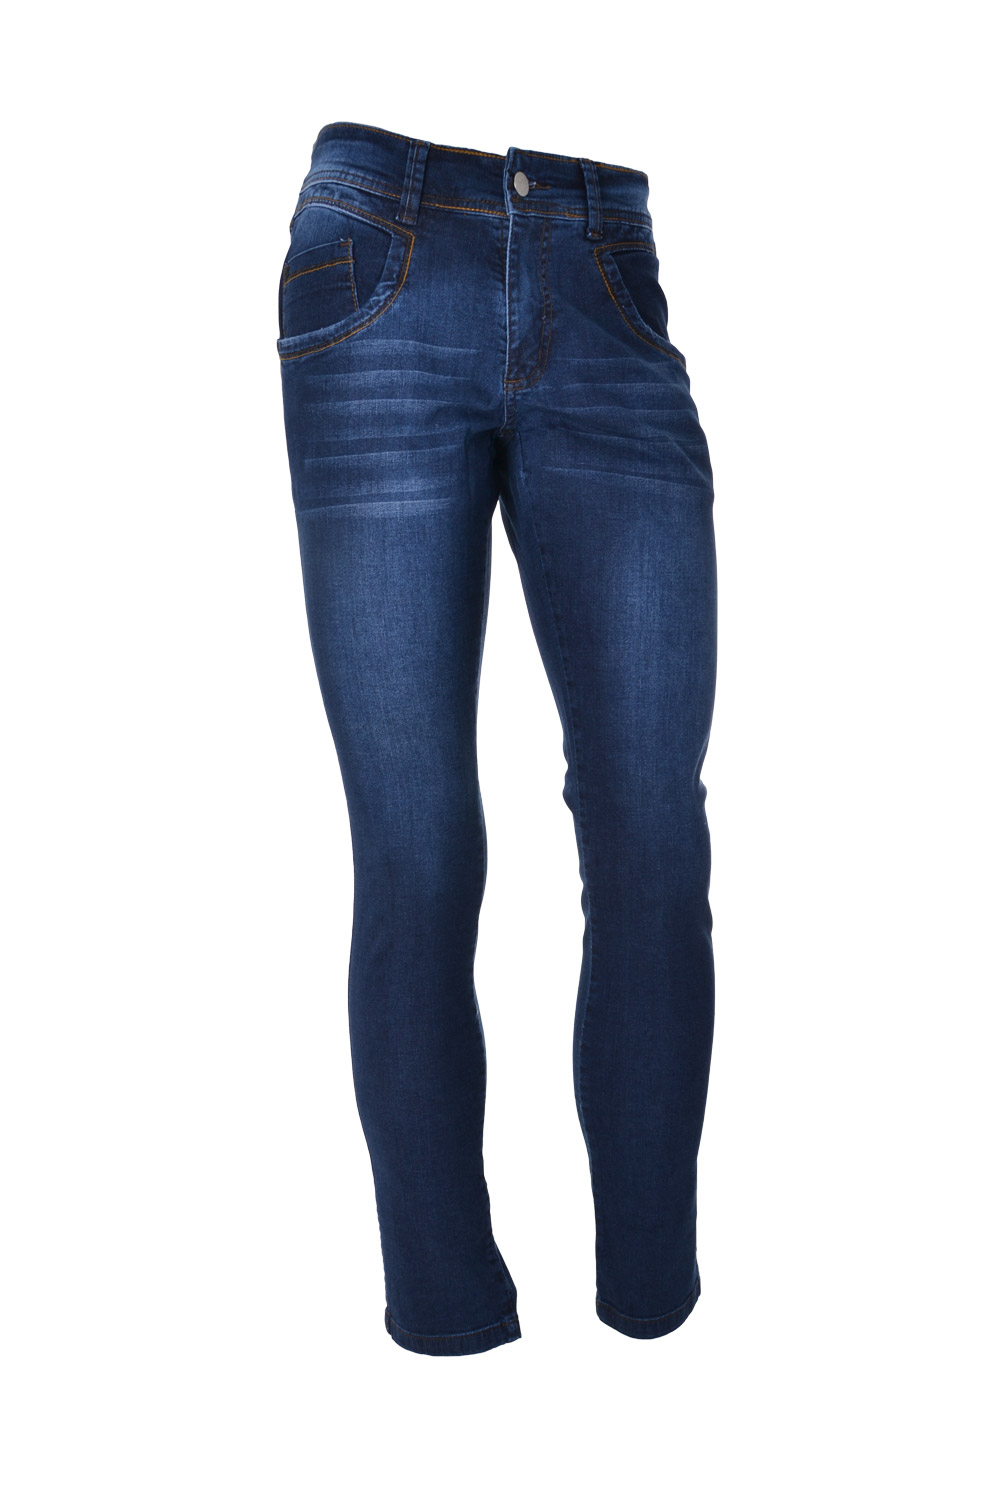 CALÇA JEANS BLUES ALGODAO & ELASTANO STRETCH STONED USED